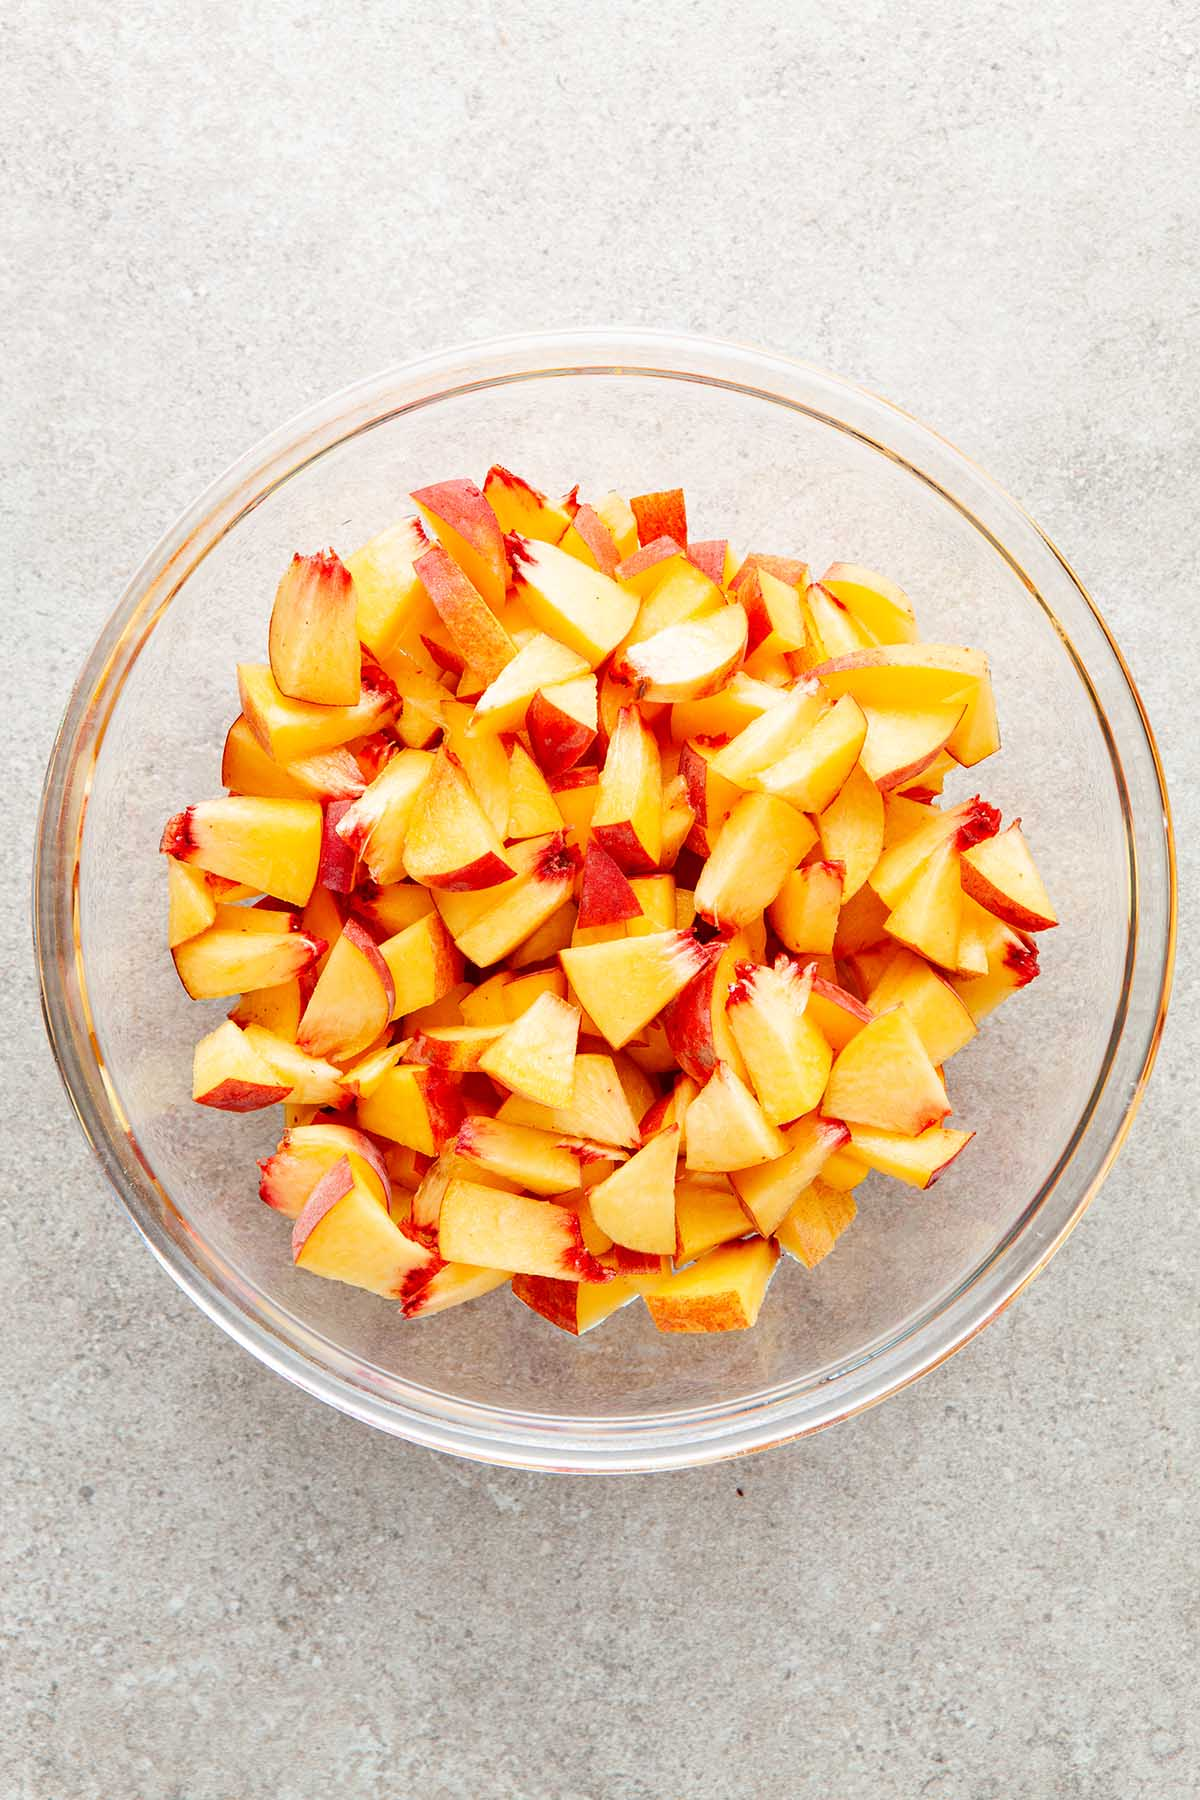 A glass bowl of chopped peaches.